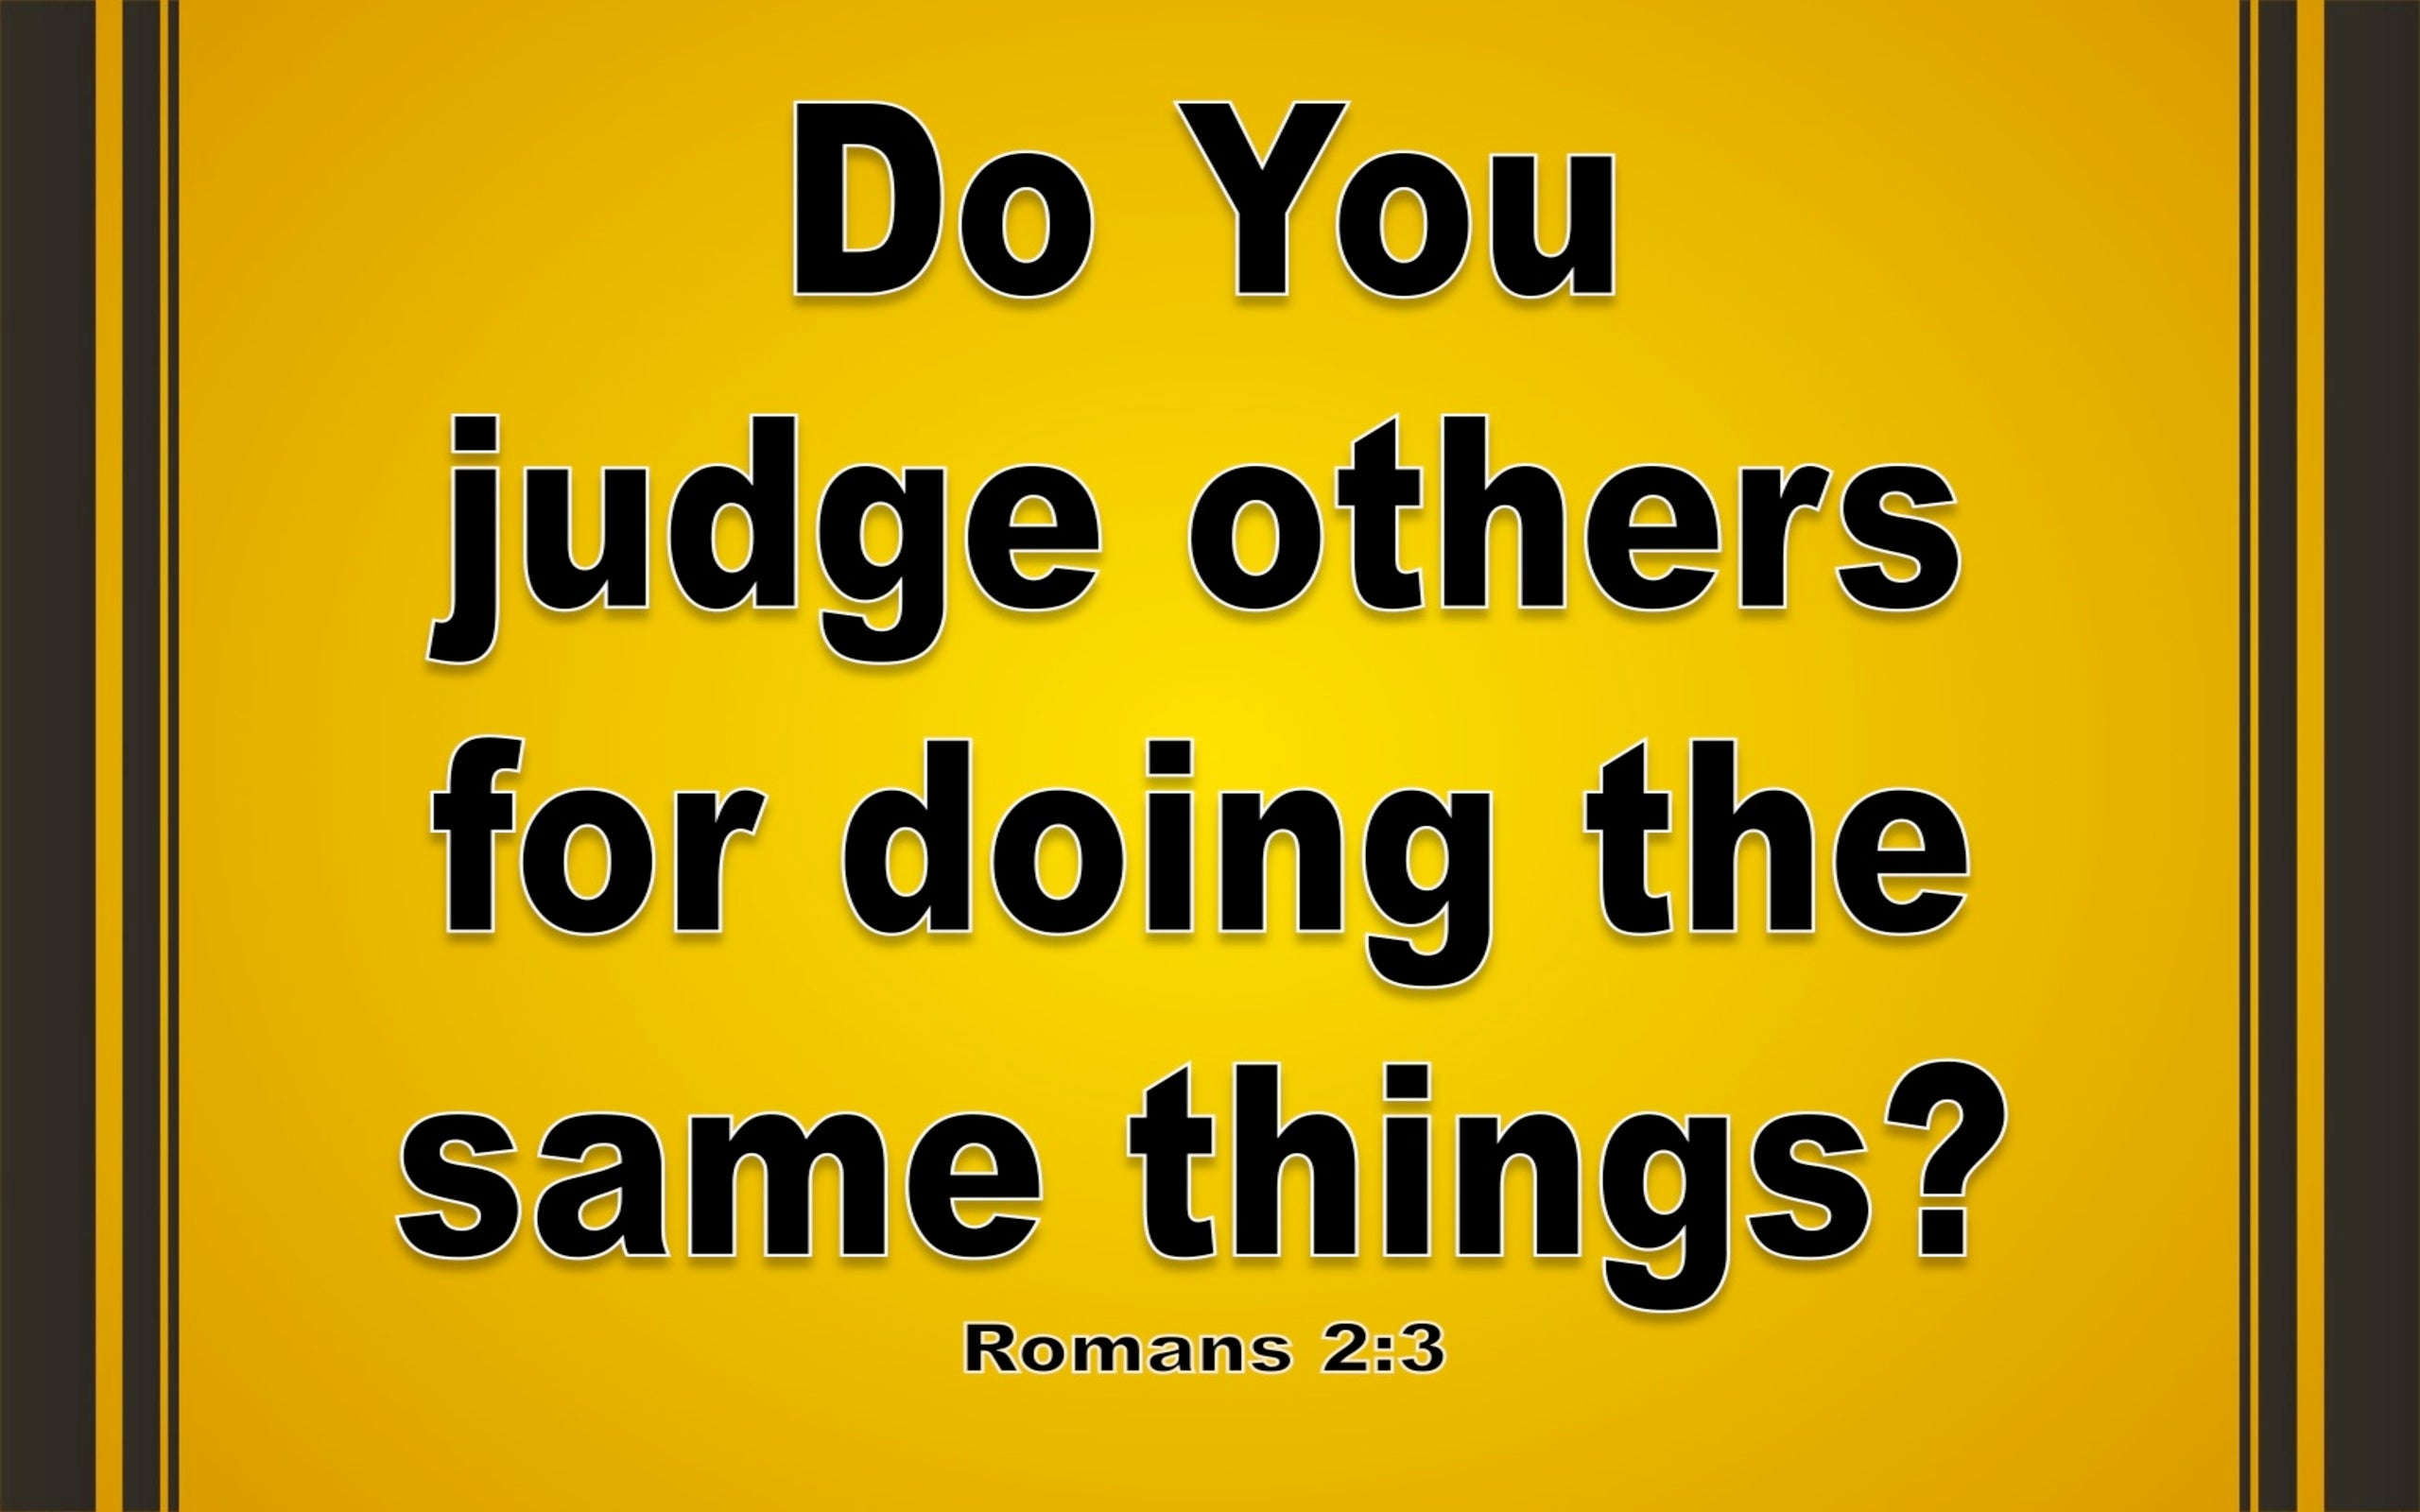 Romans 2:3 Do You Suppose You Will Escape Judgement (yellow)